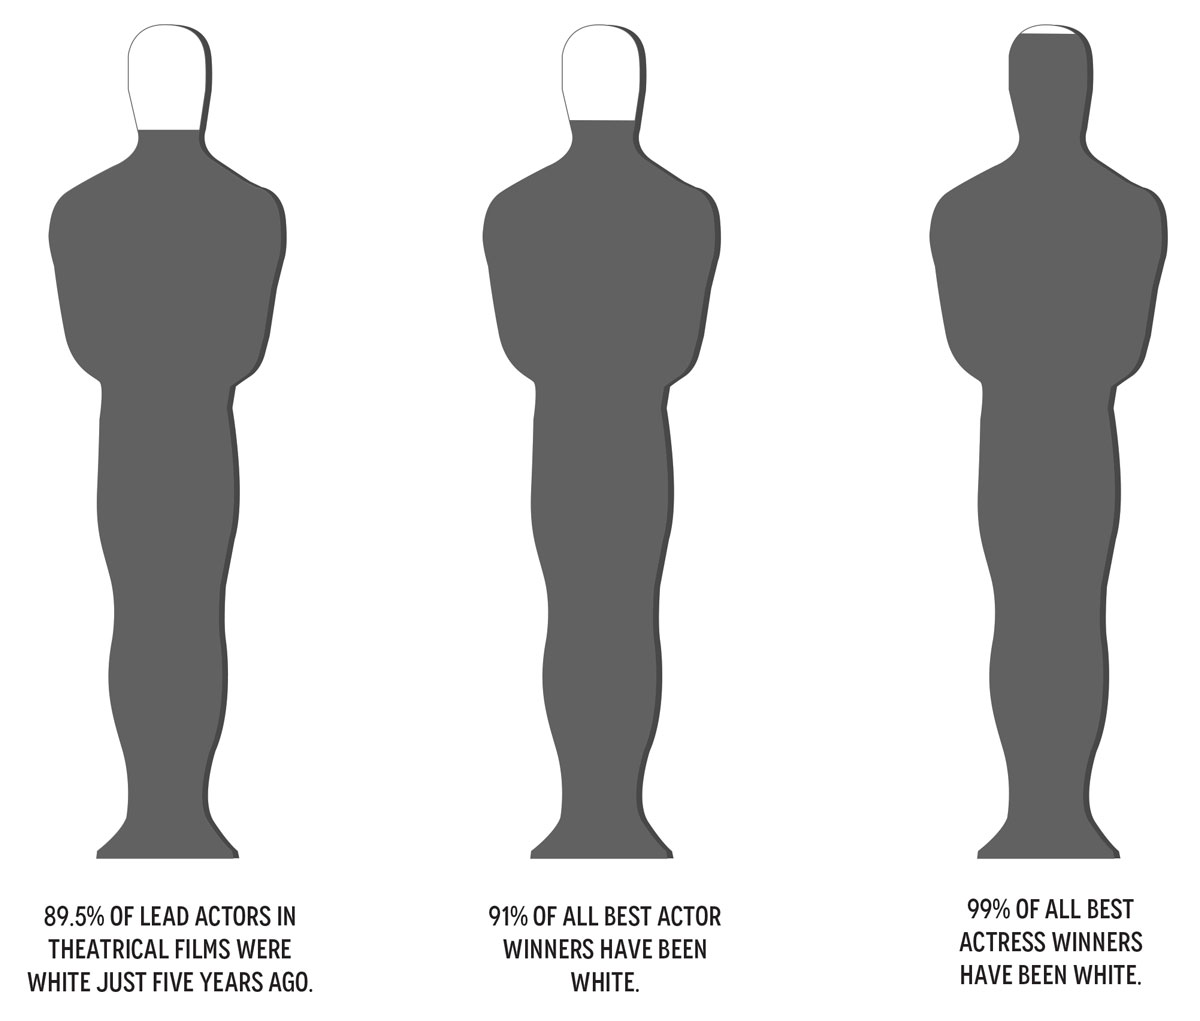 Lack of Diversity Among Oscar Nominees is Cause for Concern